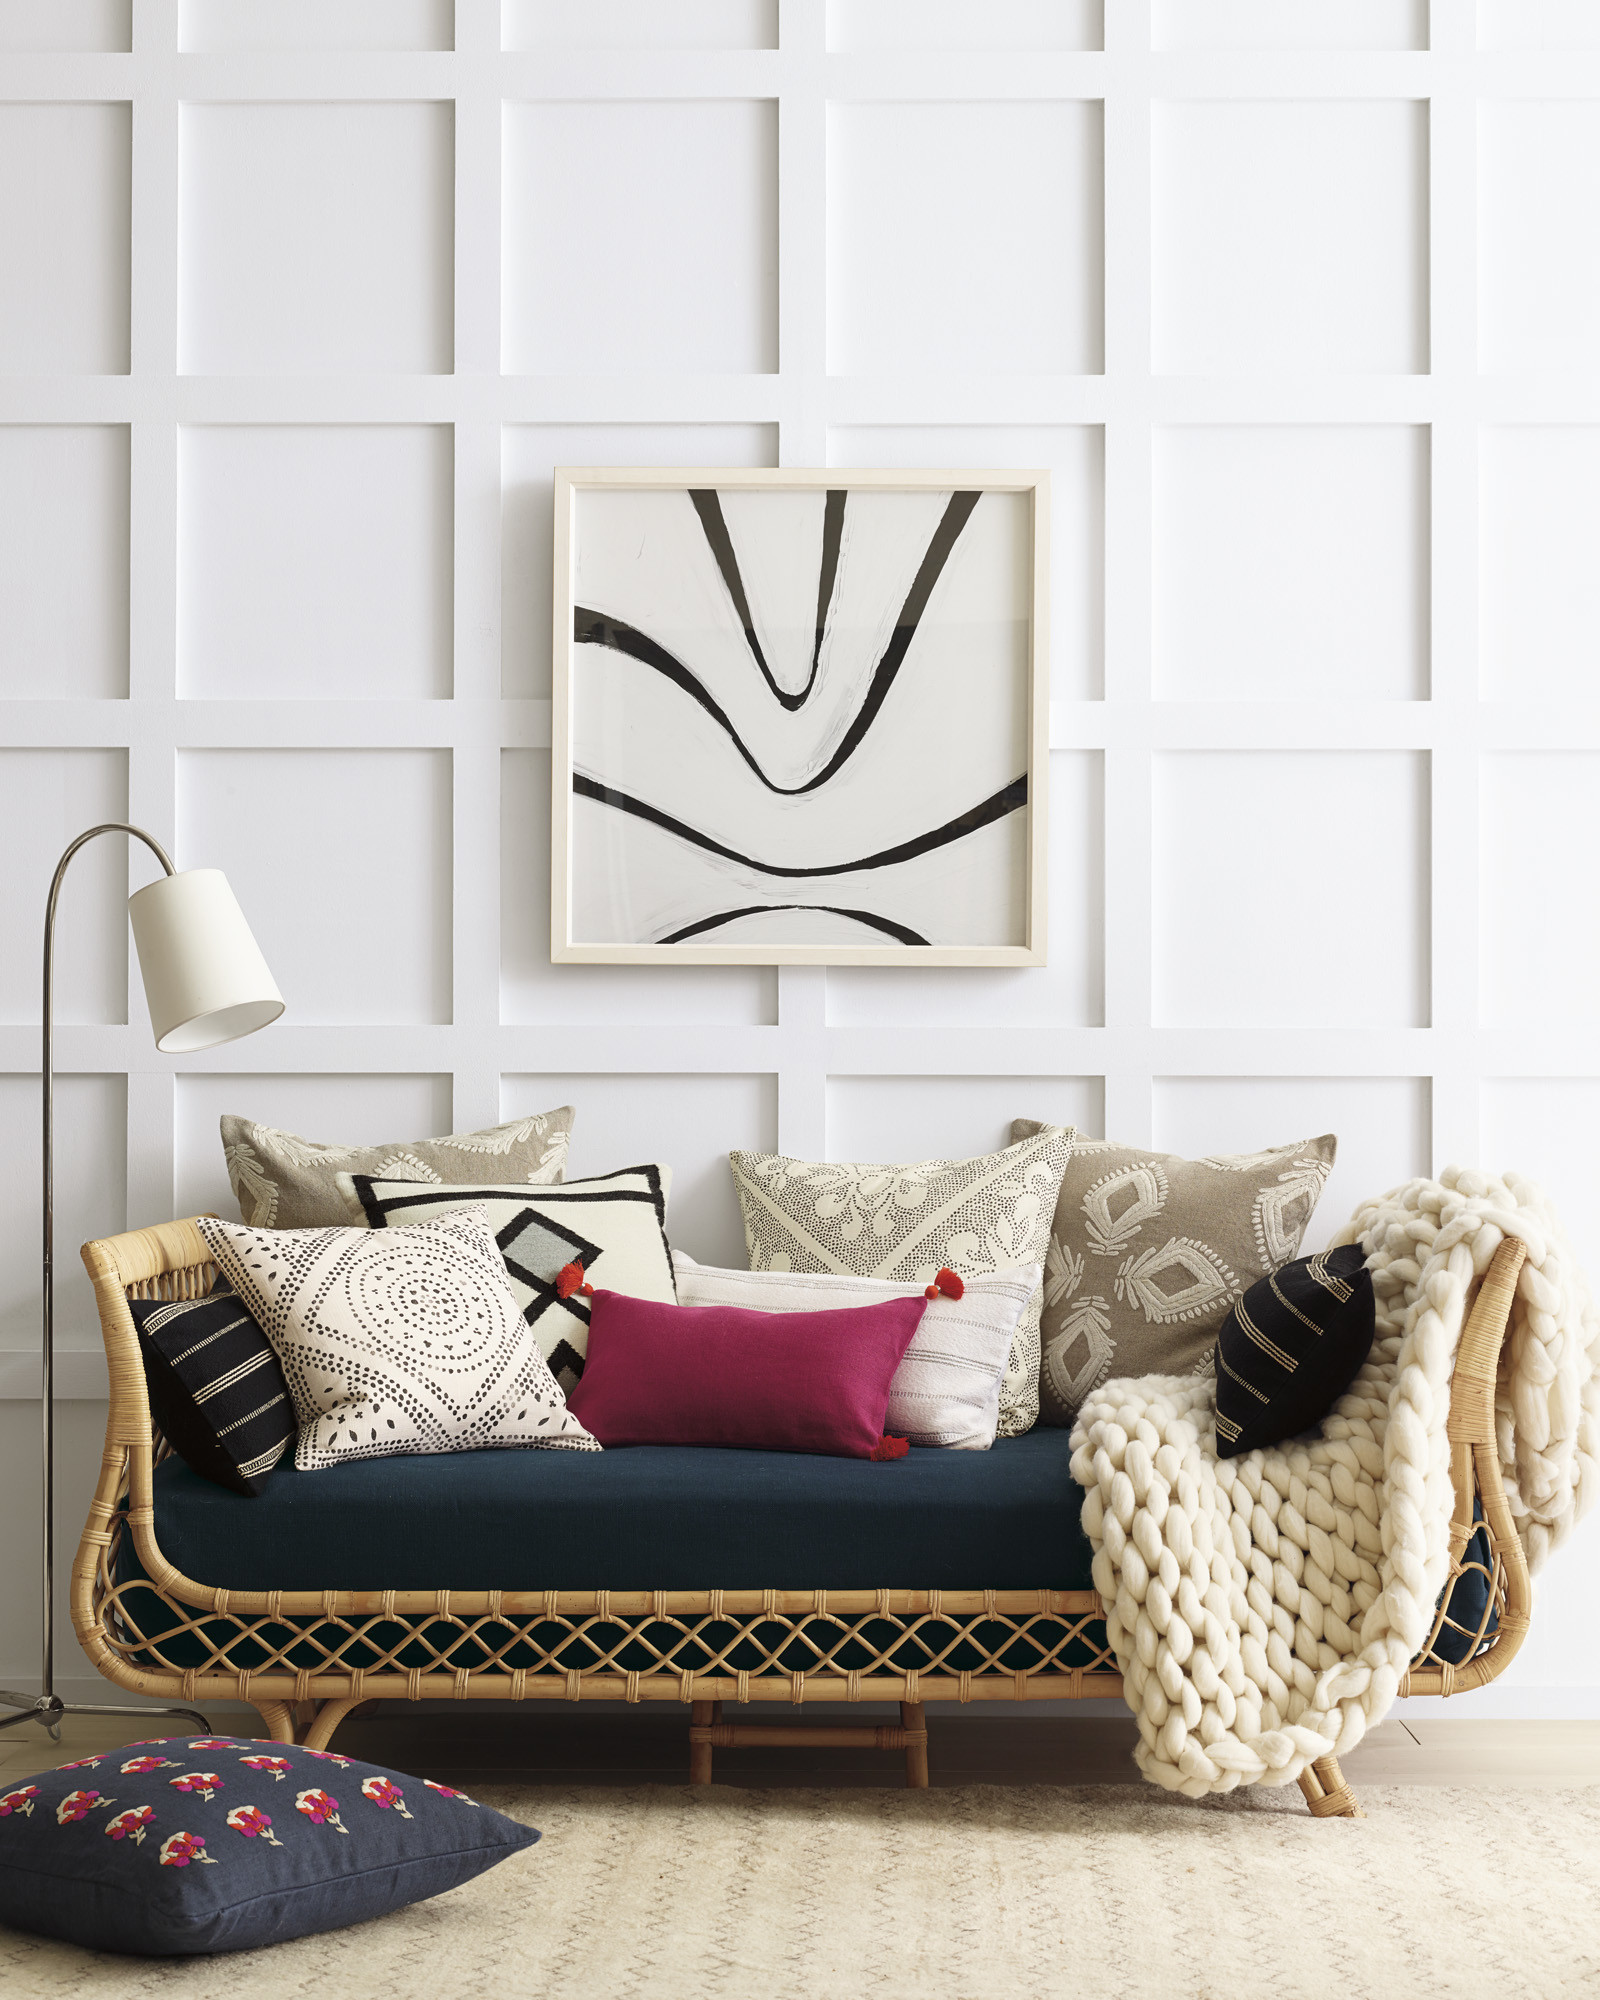 Love this rattan daybed with a mix of colorful pillows